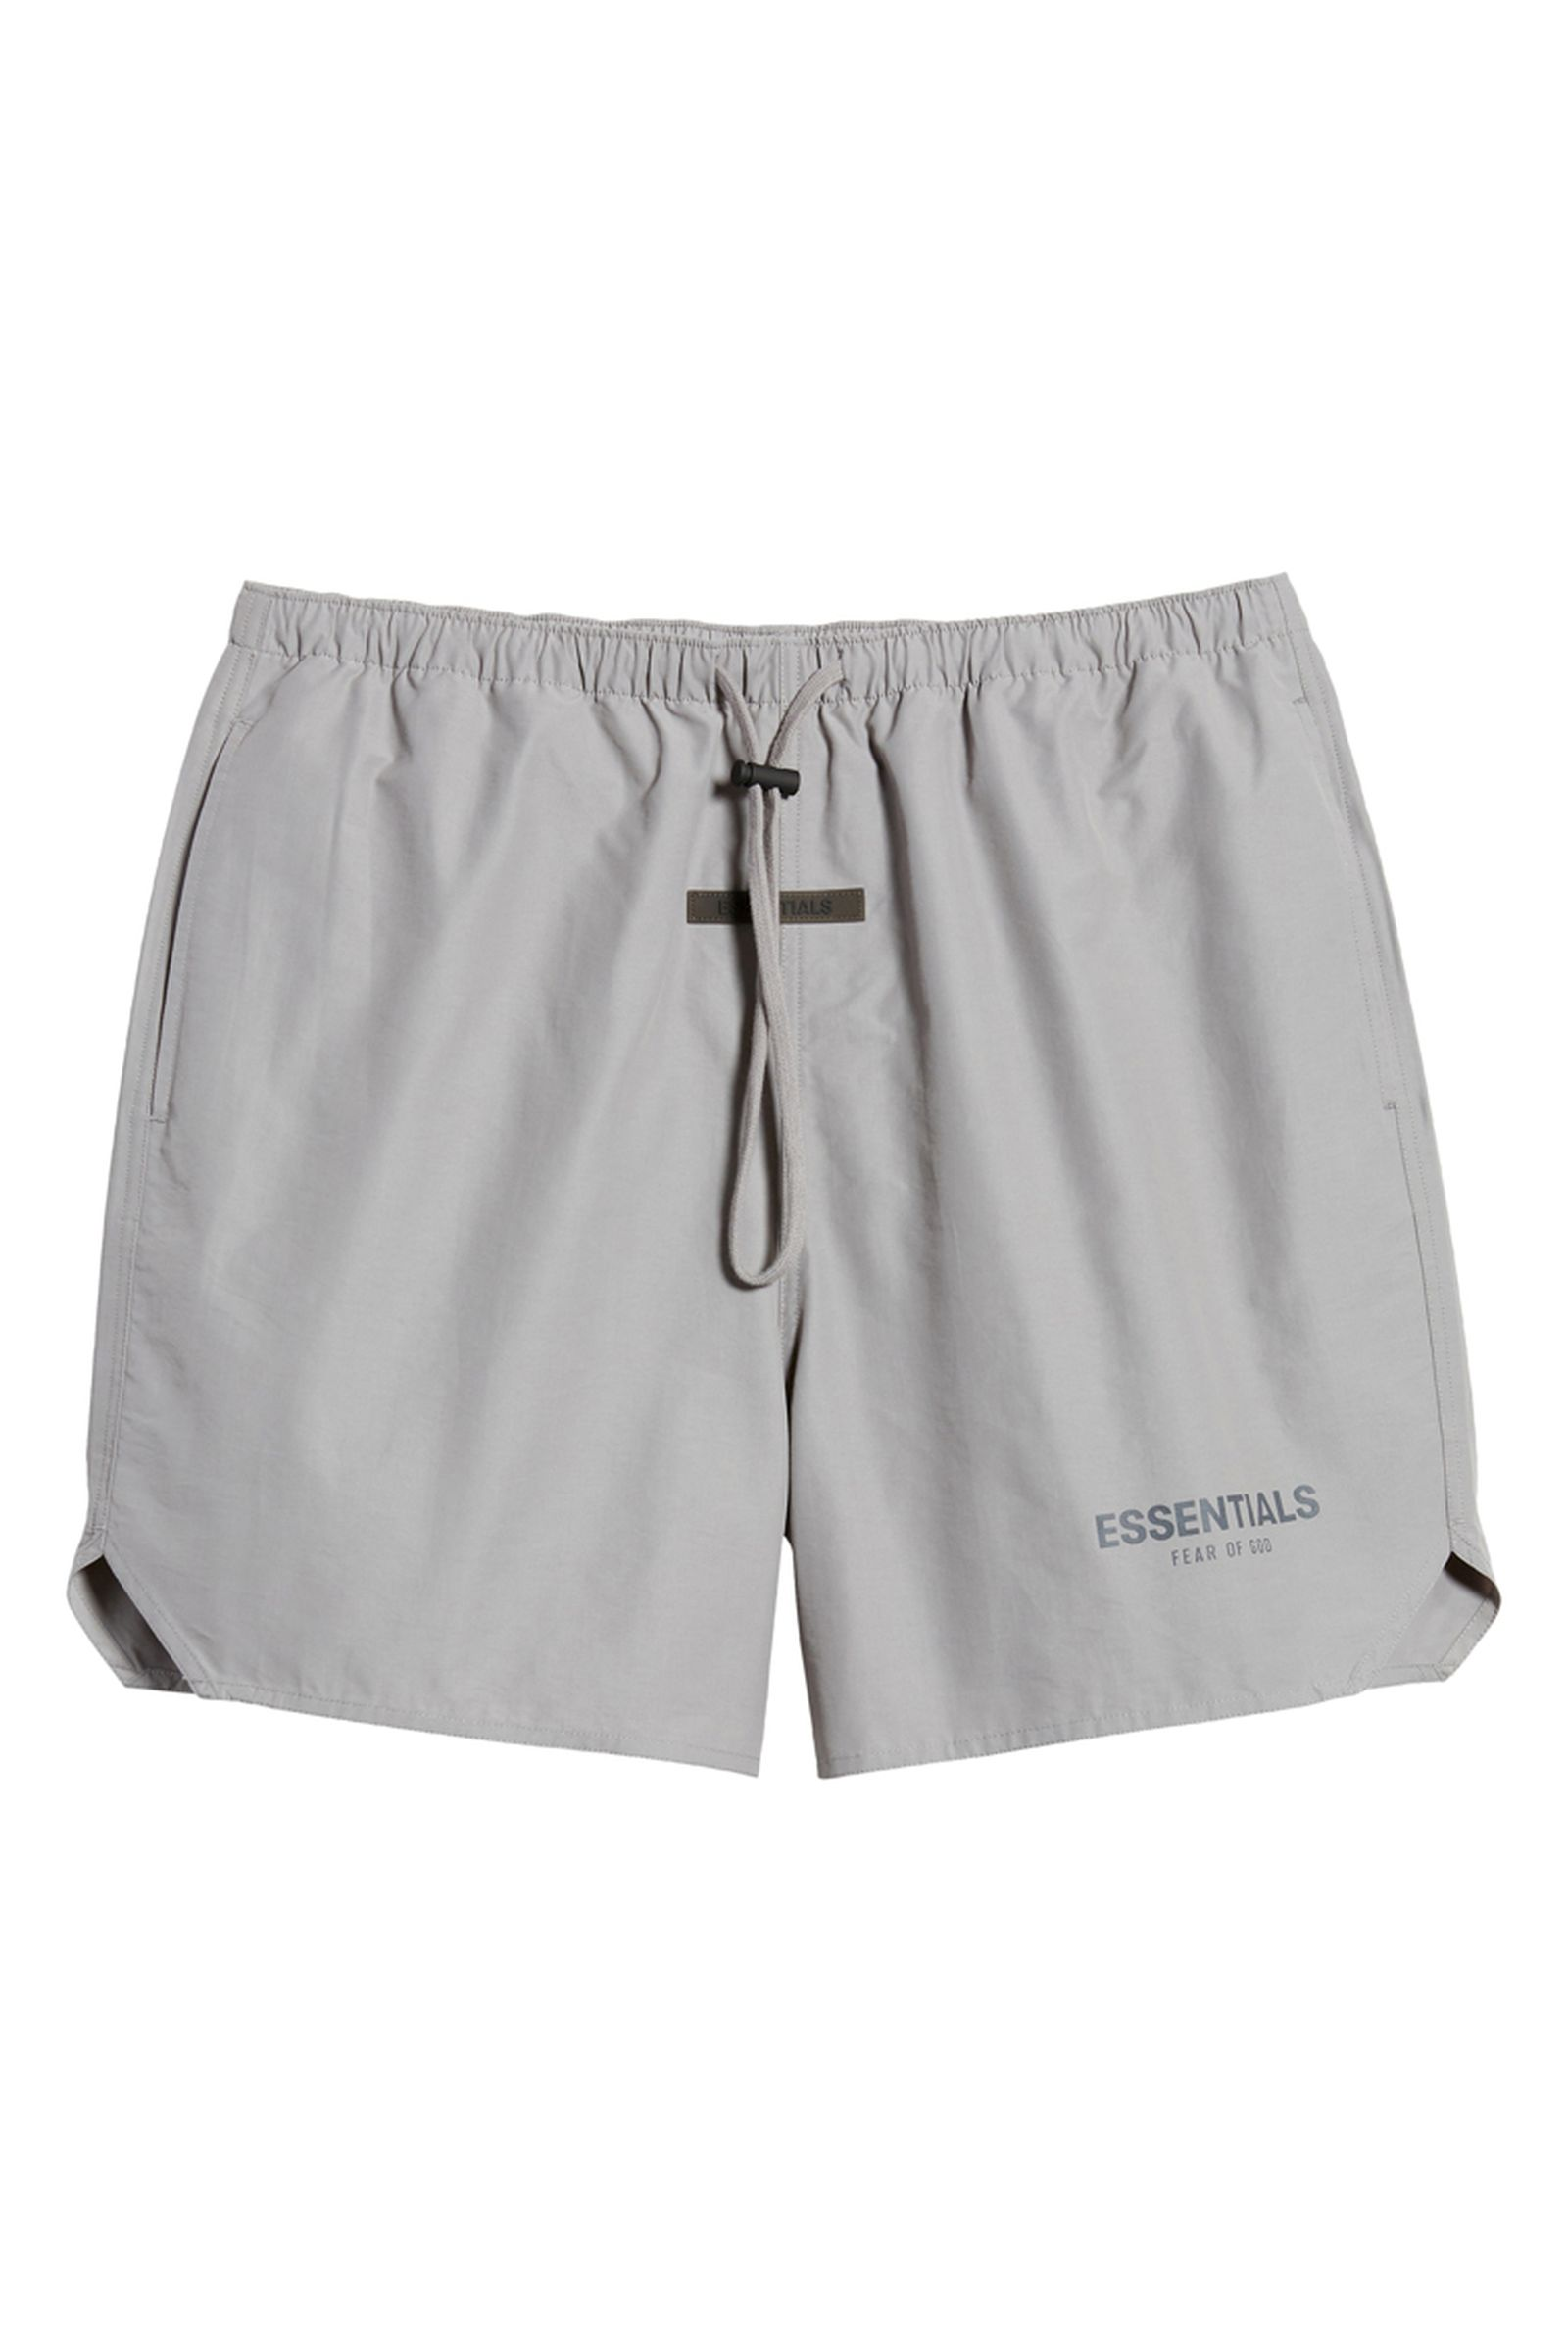 fear of god essentials nordstrom exclusive (20)